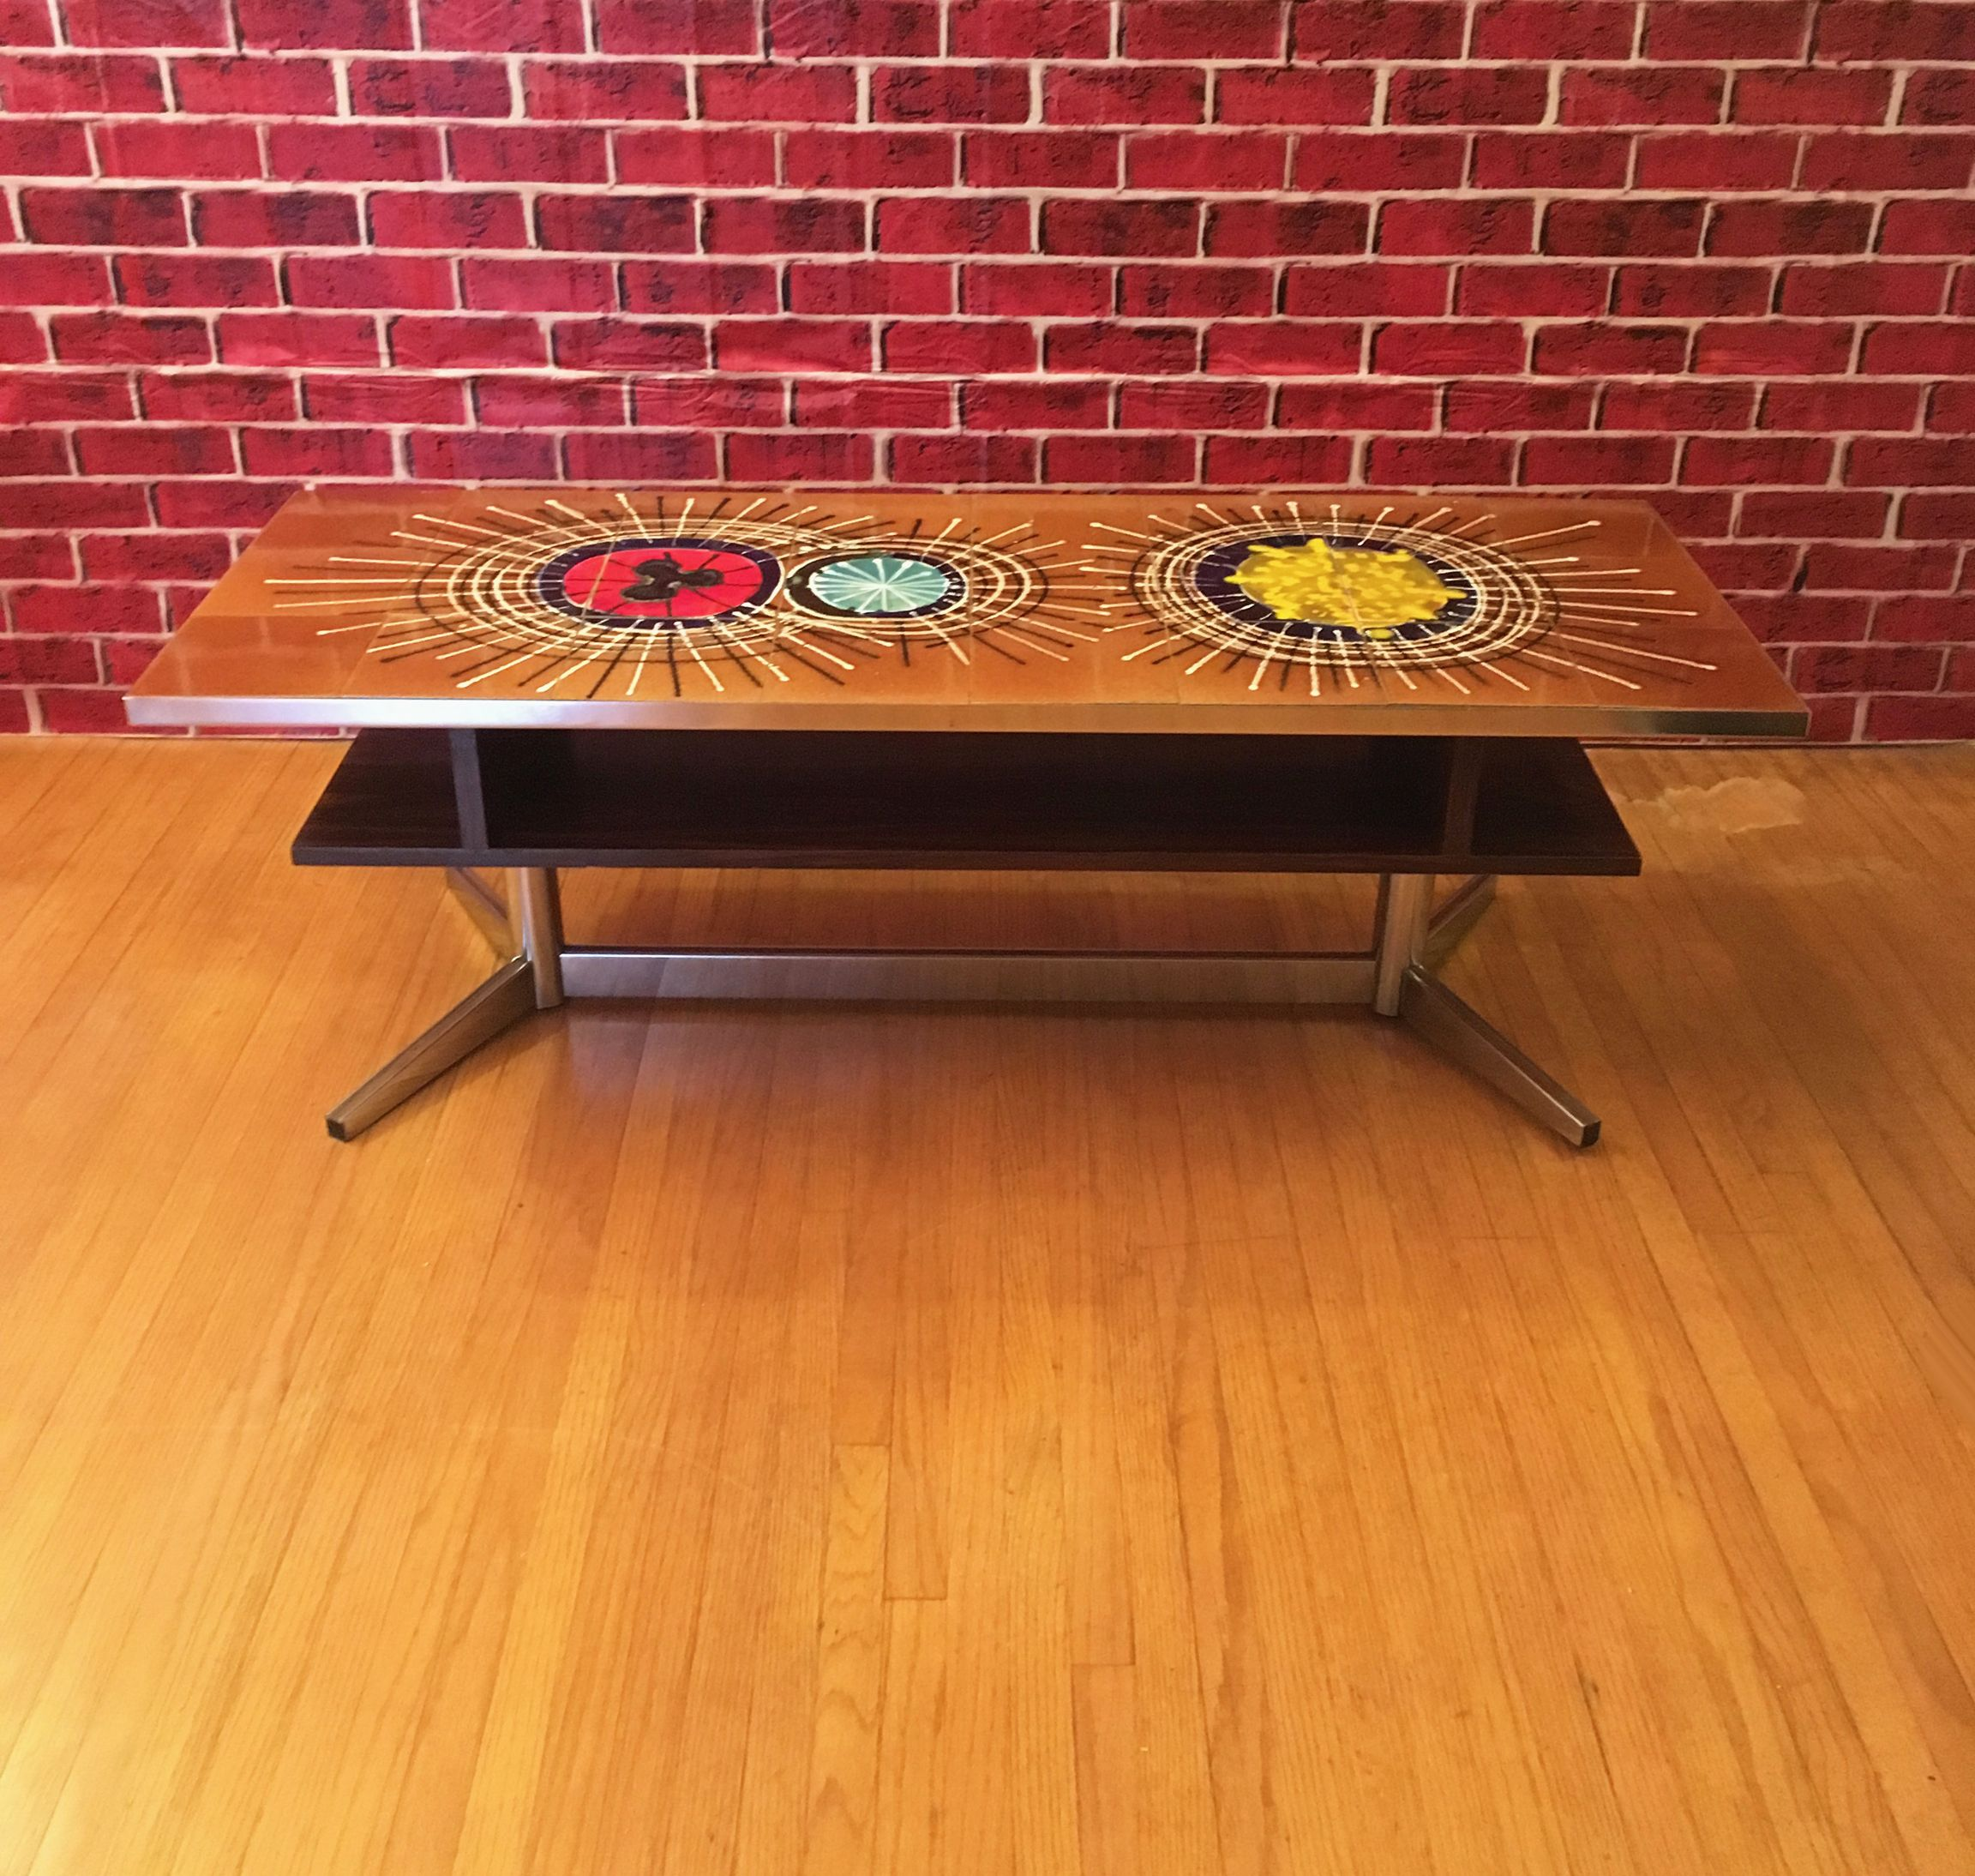 This rare and unique French Mid Century ceramic tile coffee table